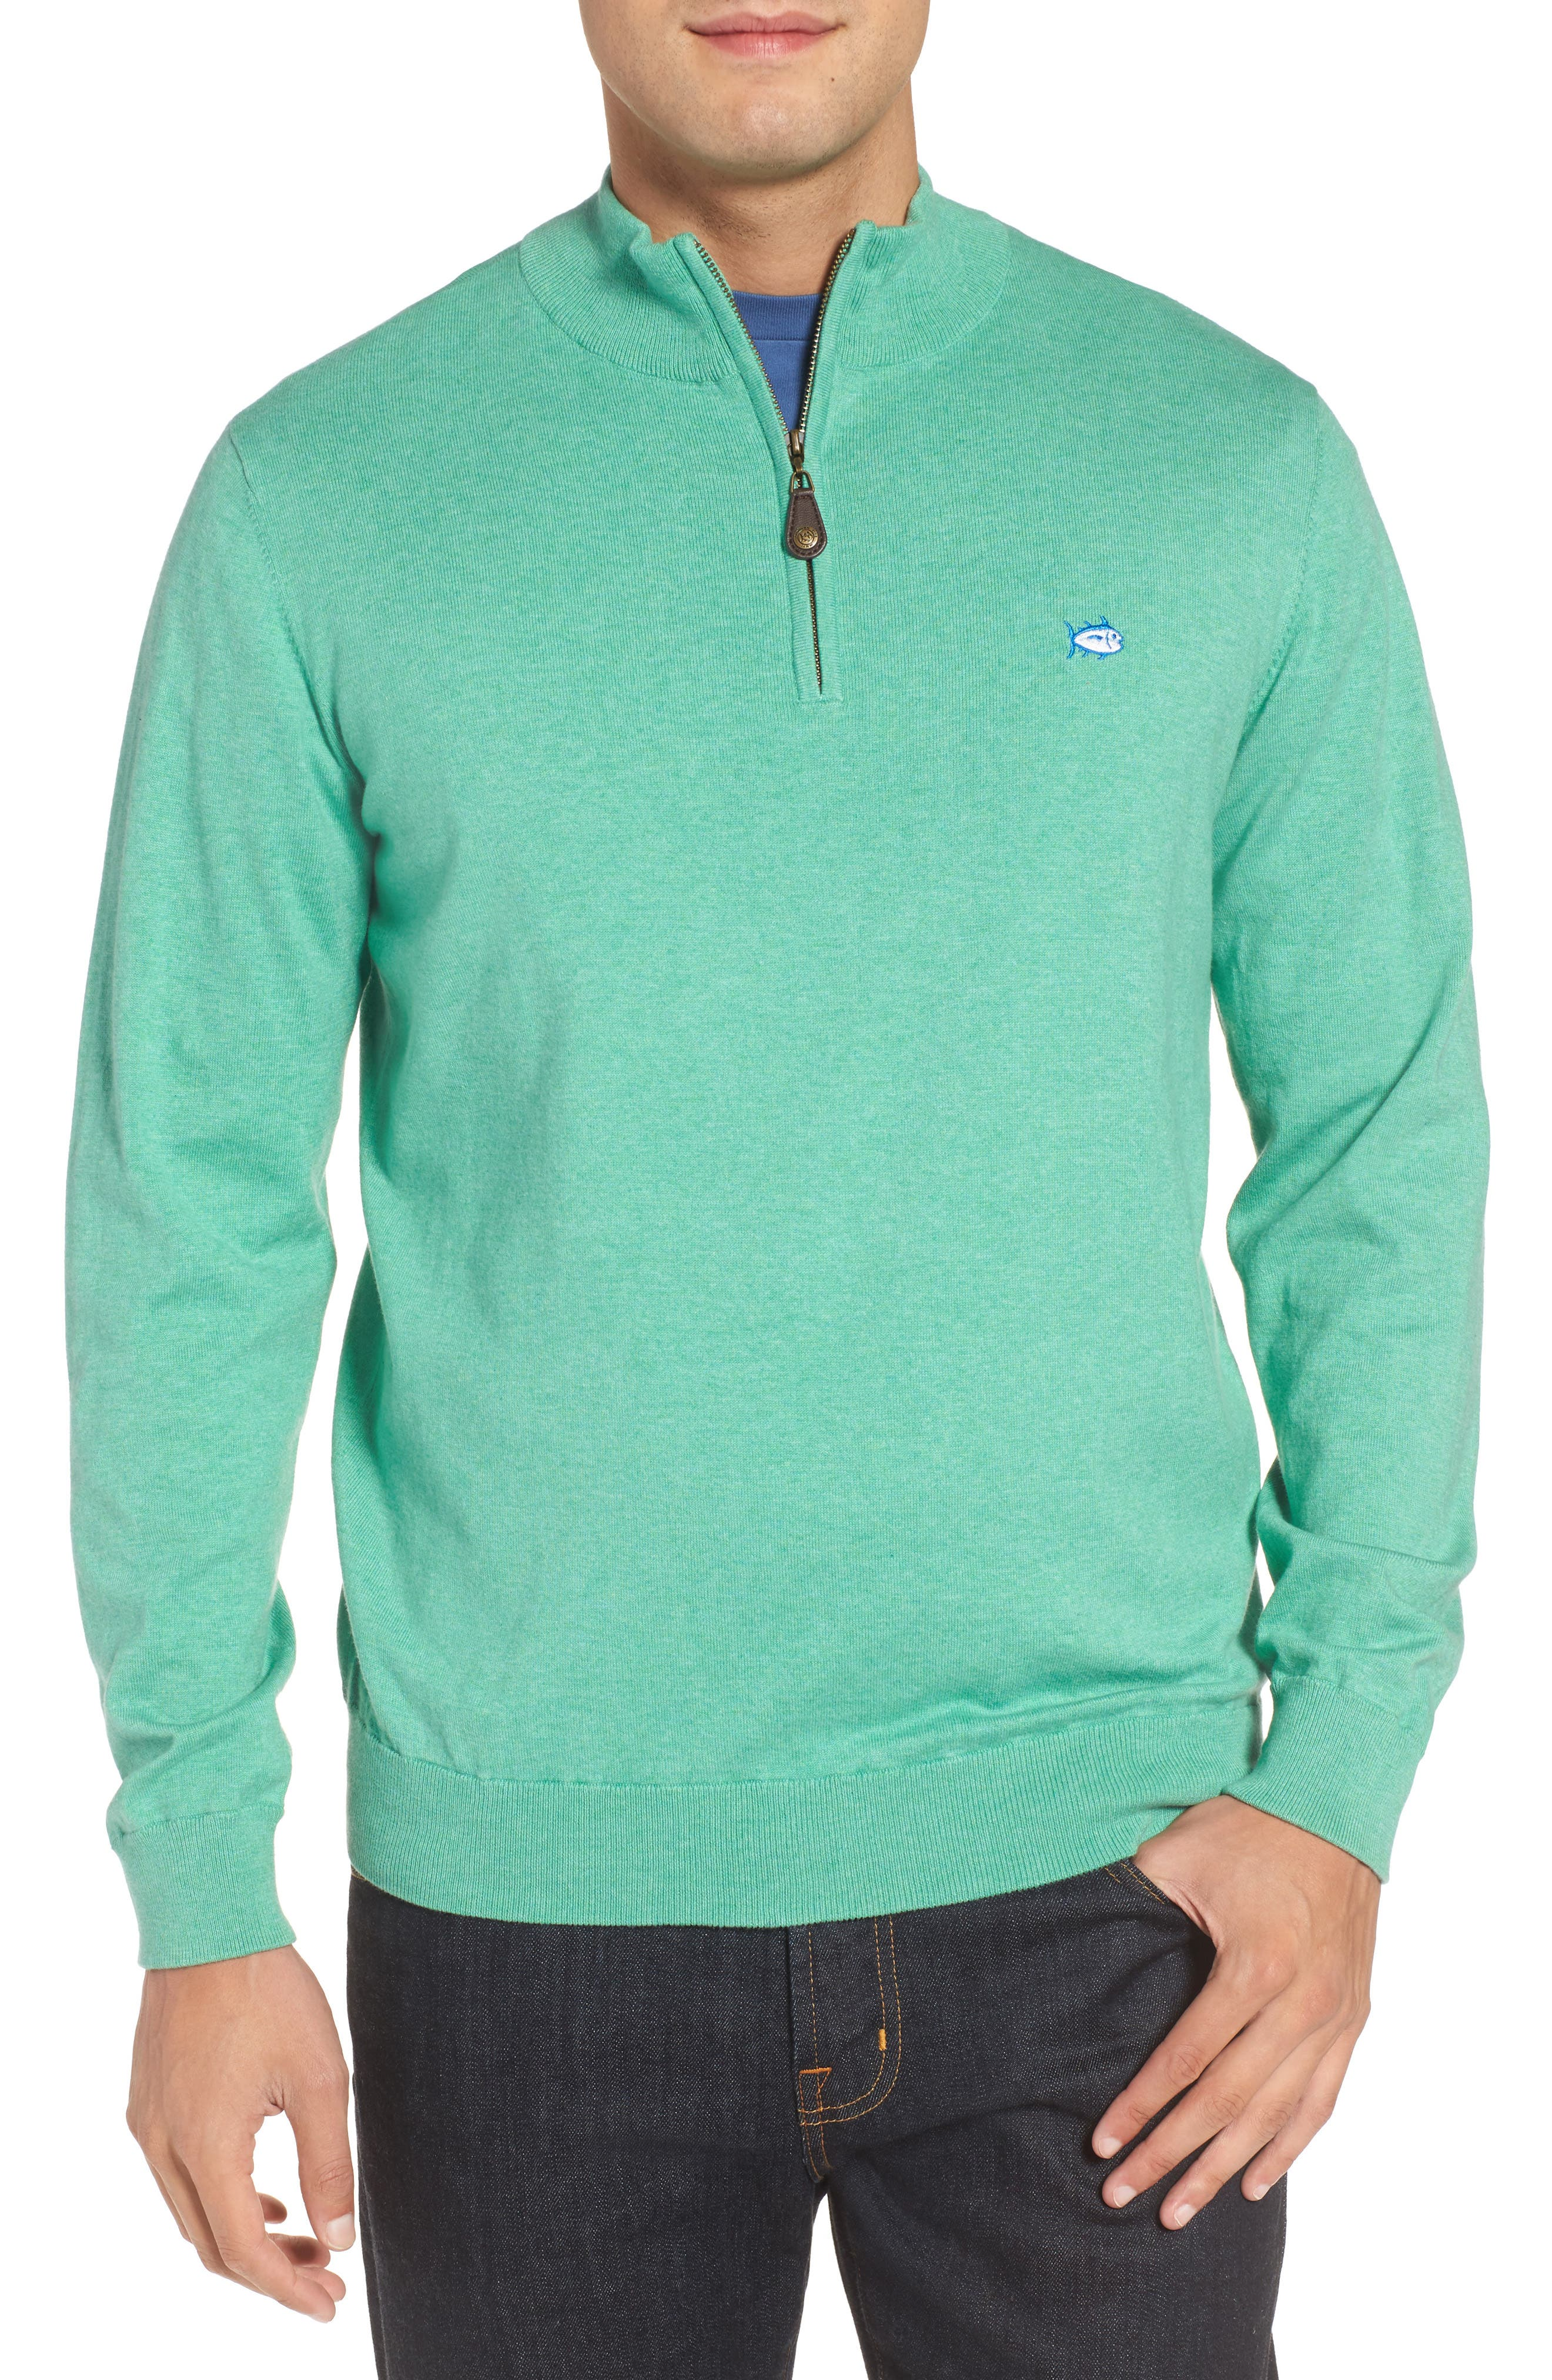 Main Image - Southern Tide Marina Cay Quarter Zip Pullover